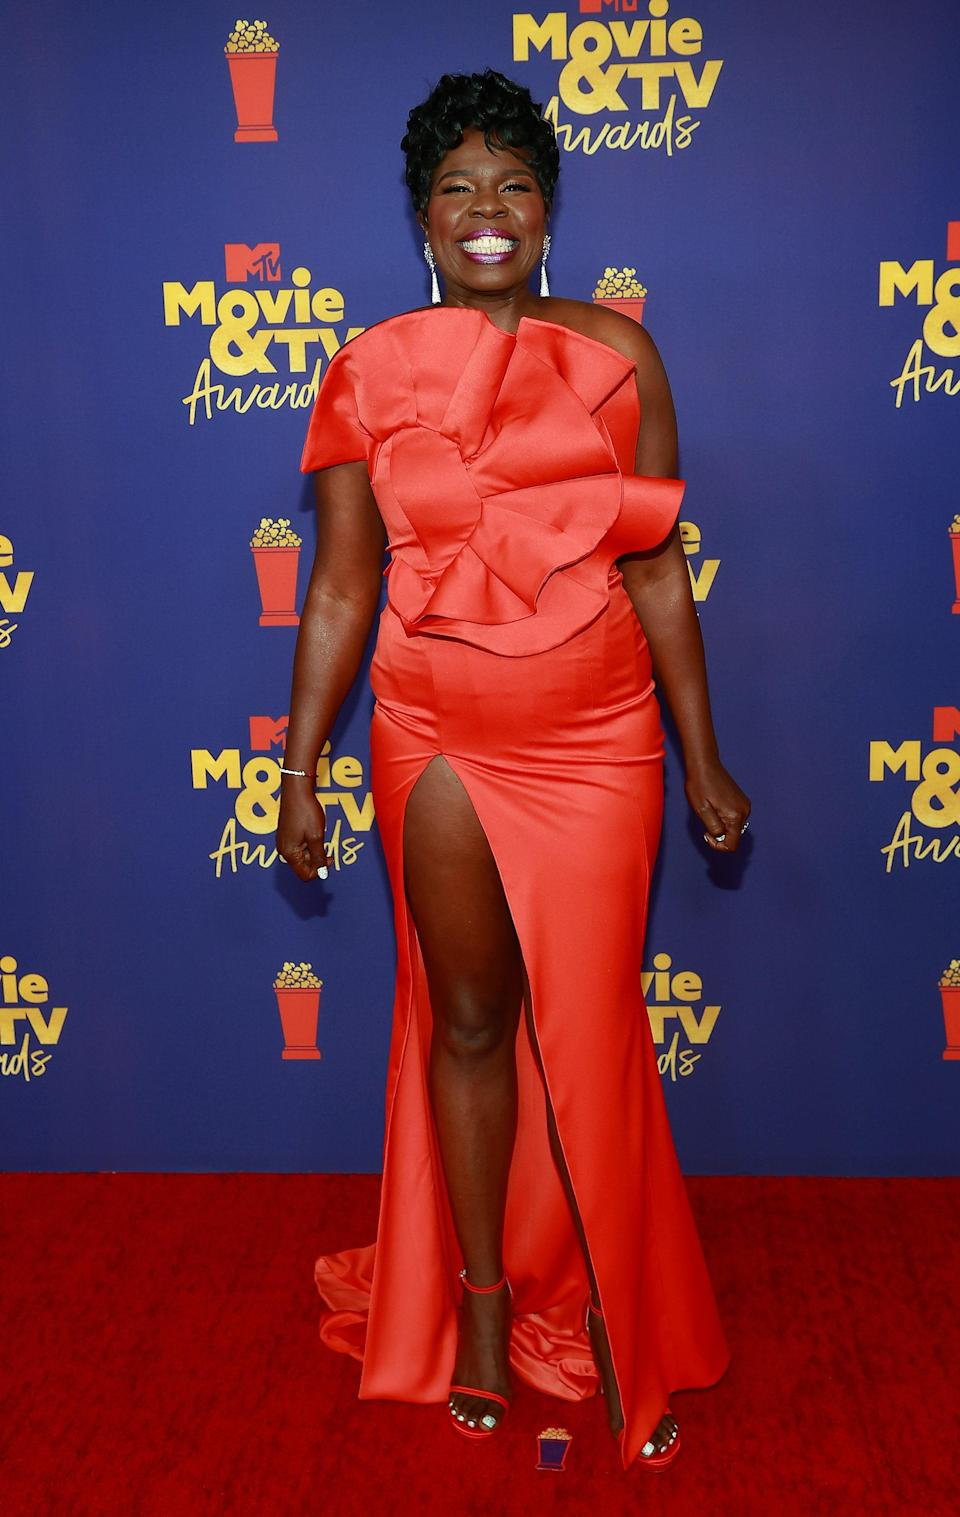 Host of the evening Leslie Jones had multiple outfits throughout the evening. She looked radiant in her rogue red carpet gown which featured a sultry thigh split and origami chest design.